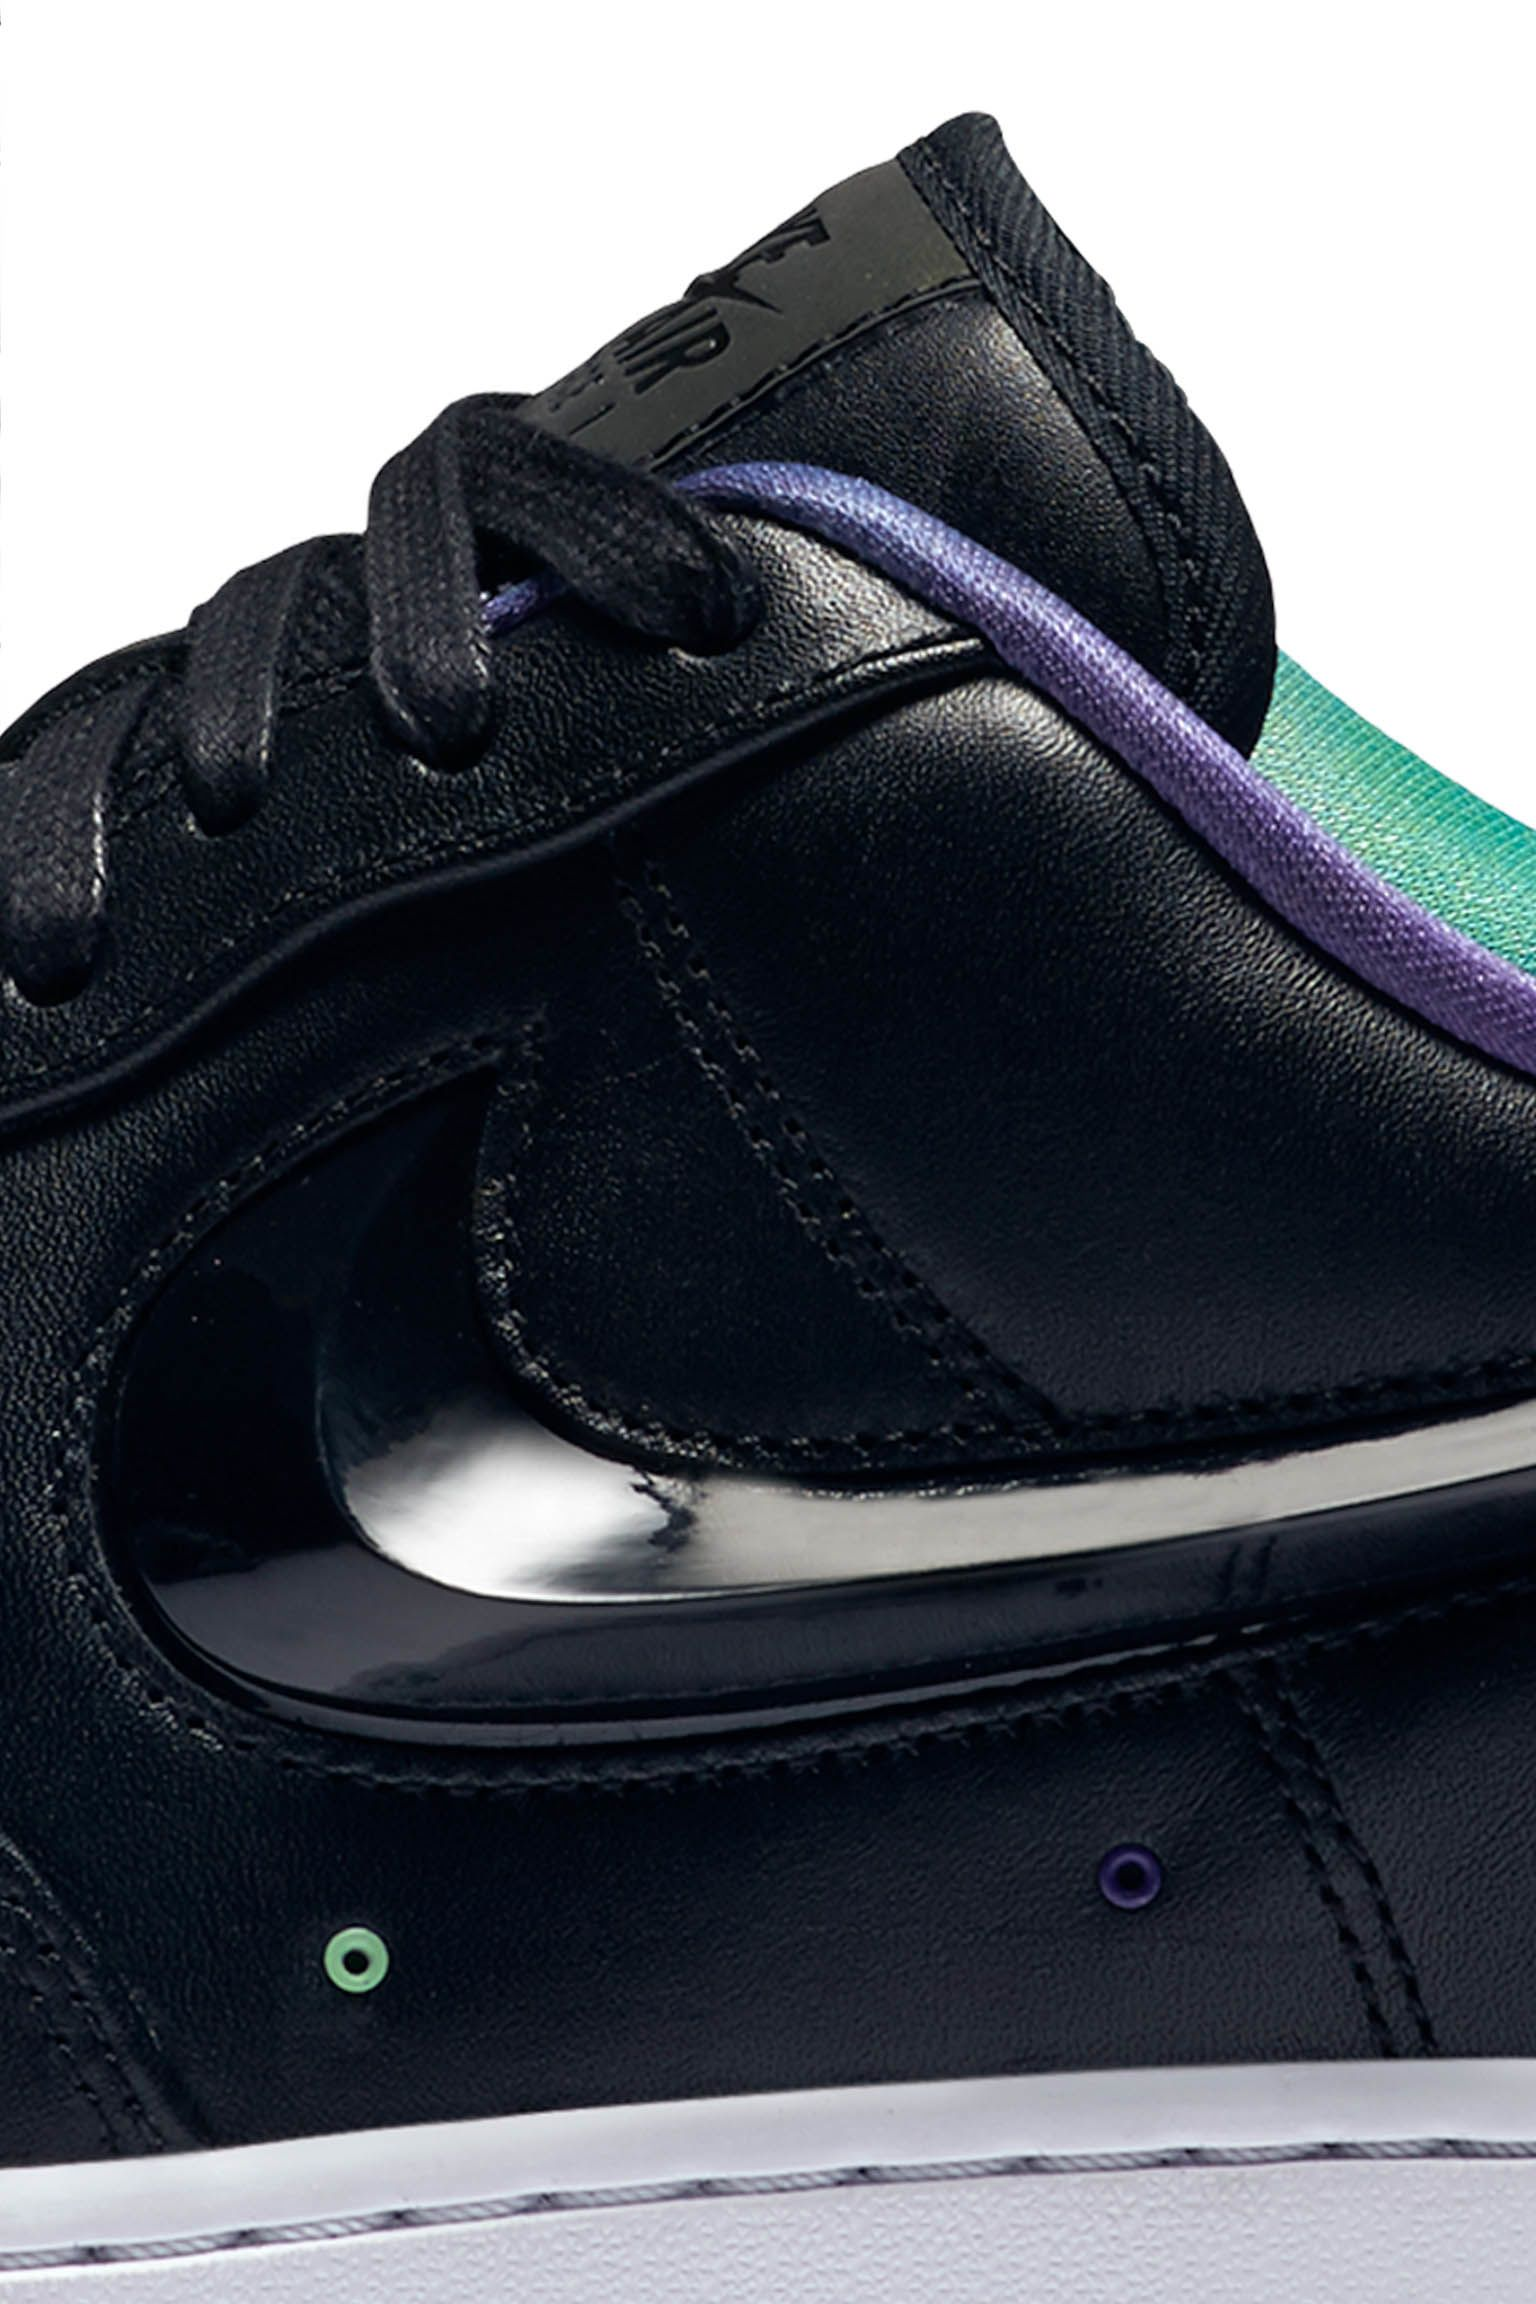 Nike Air Force 1 'Northern Lights'